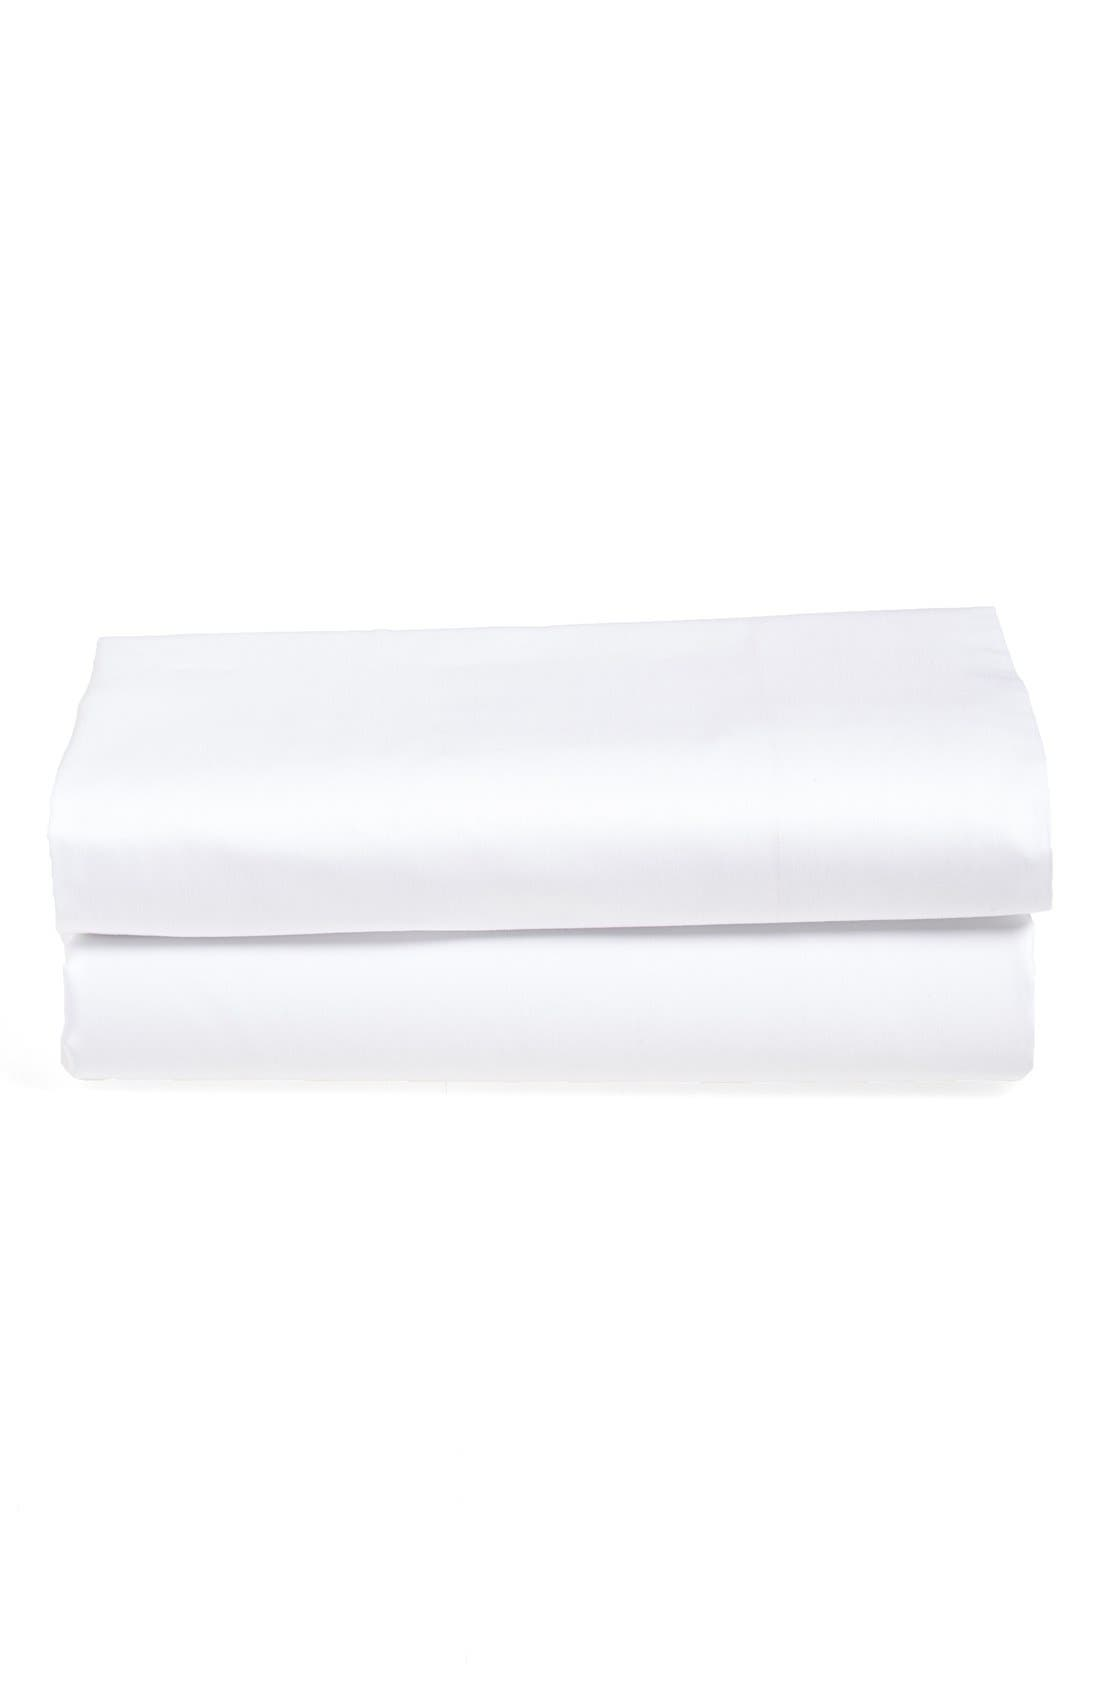 'Ultra Luxe' 600 Thread Count Fitted Sheet,                             Main thumbnail 1, color,                             100